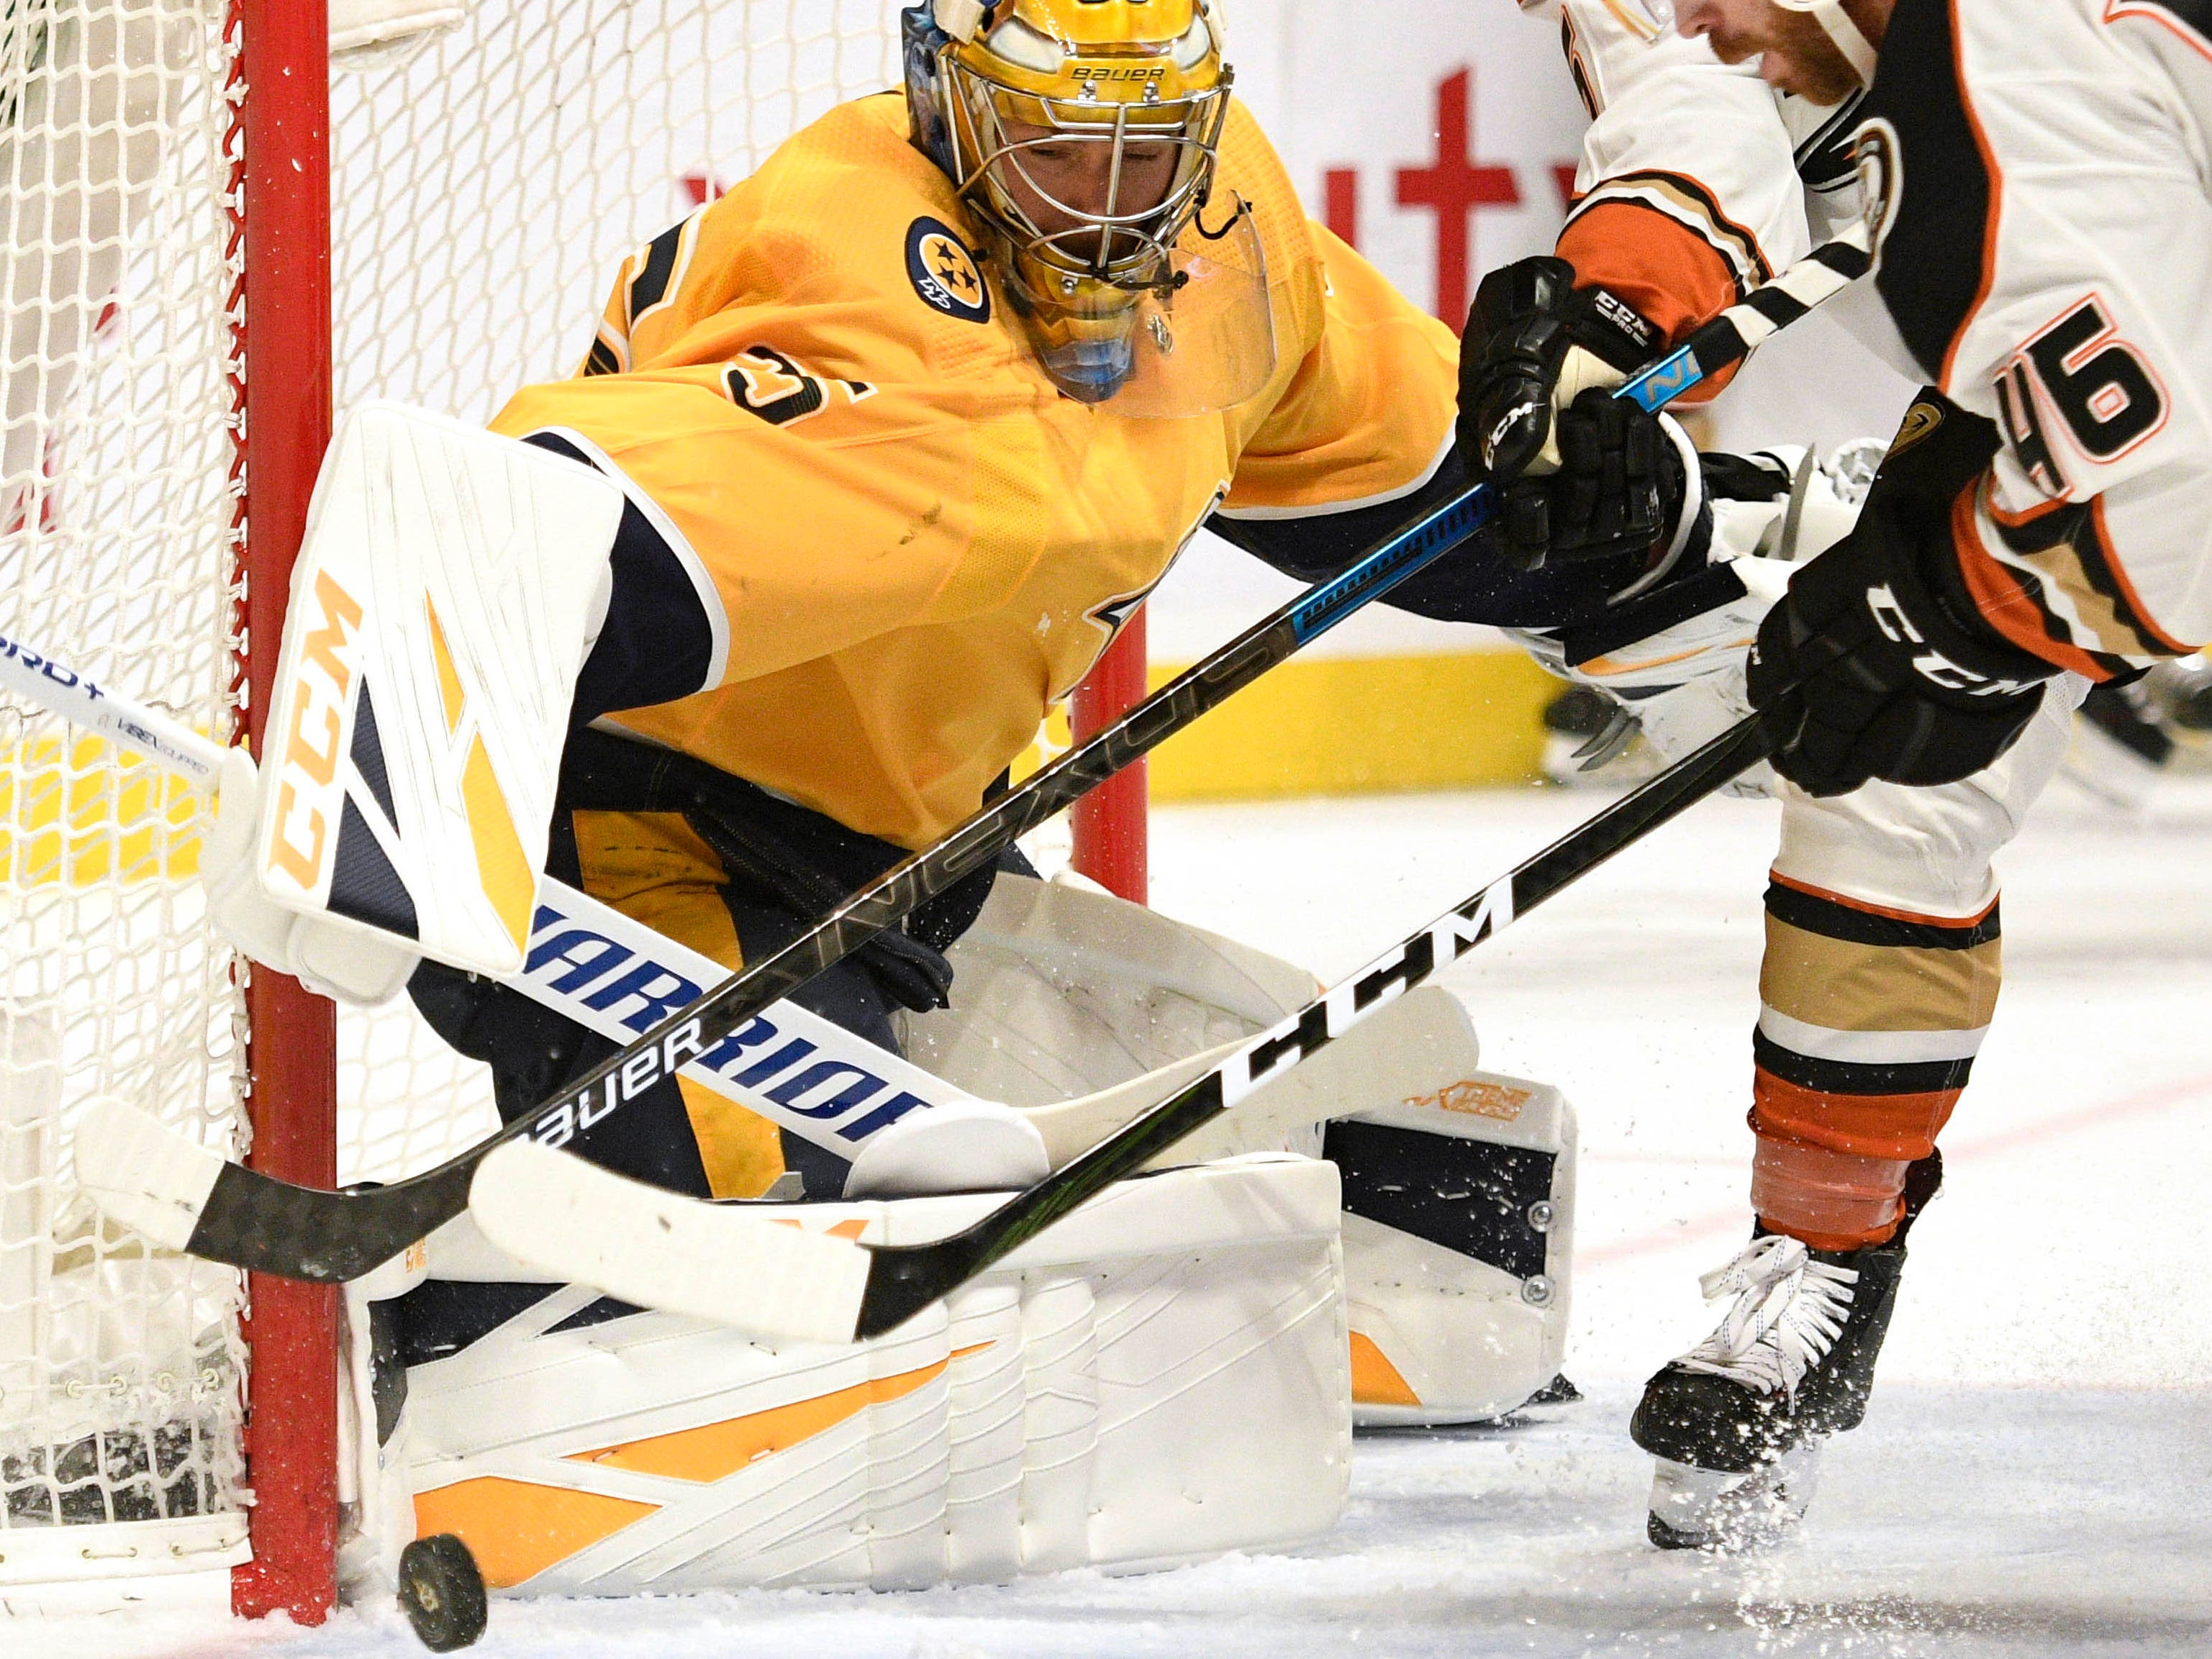 Nashville Predators goaltender Pekka Rinne (35) makes a save on a shot from Anaheim Ducks center Ben Street (46) during the second period at Bridgestone Arena.